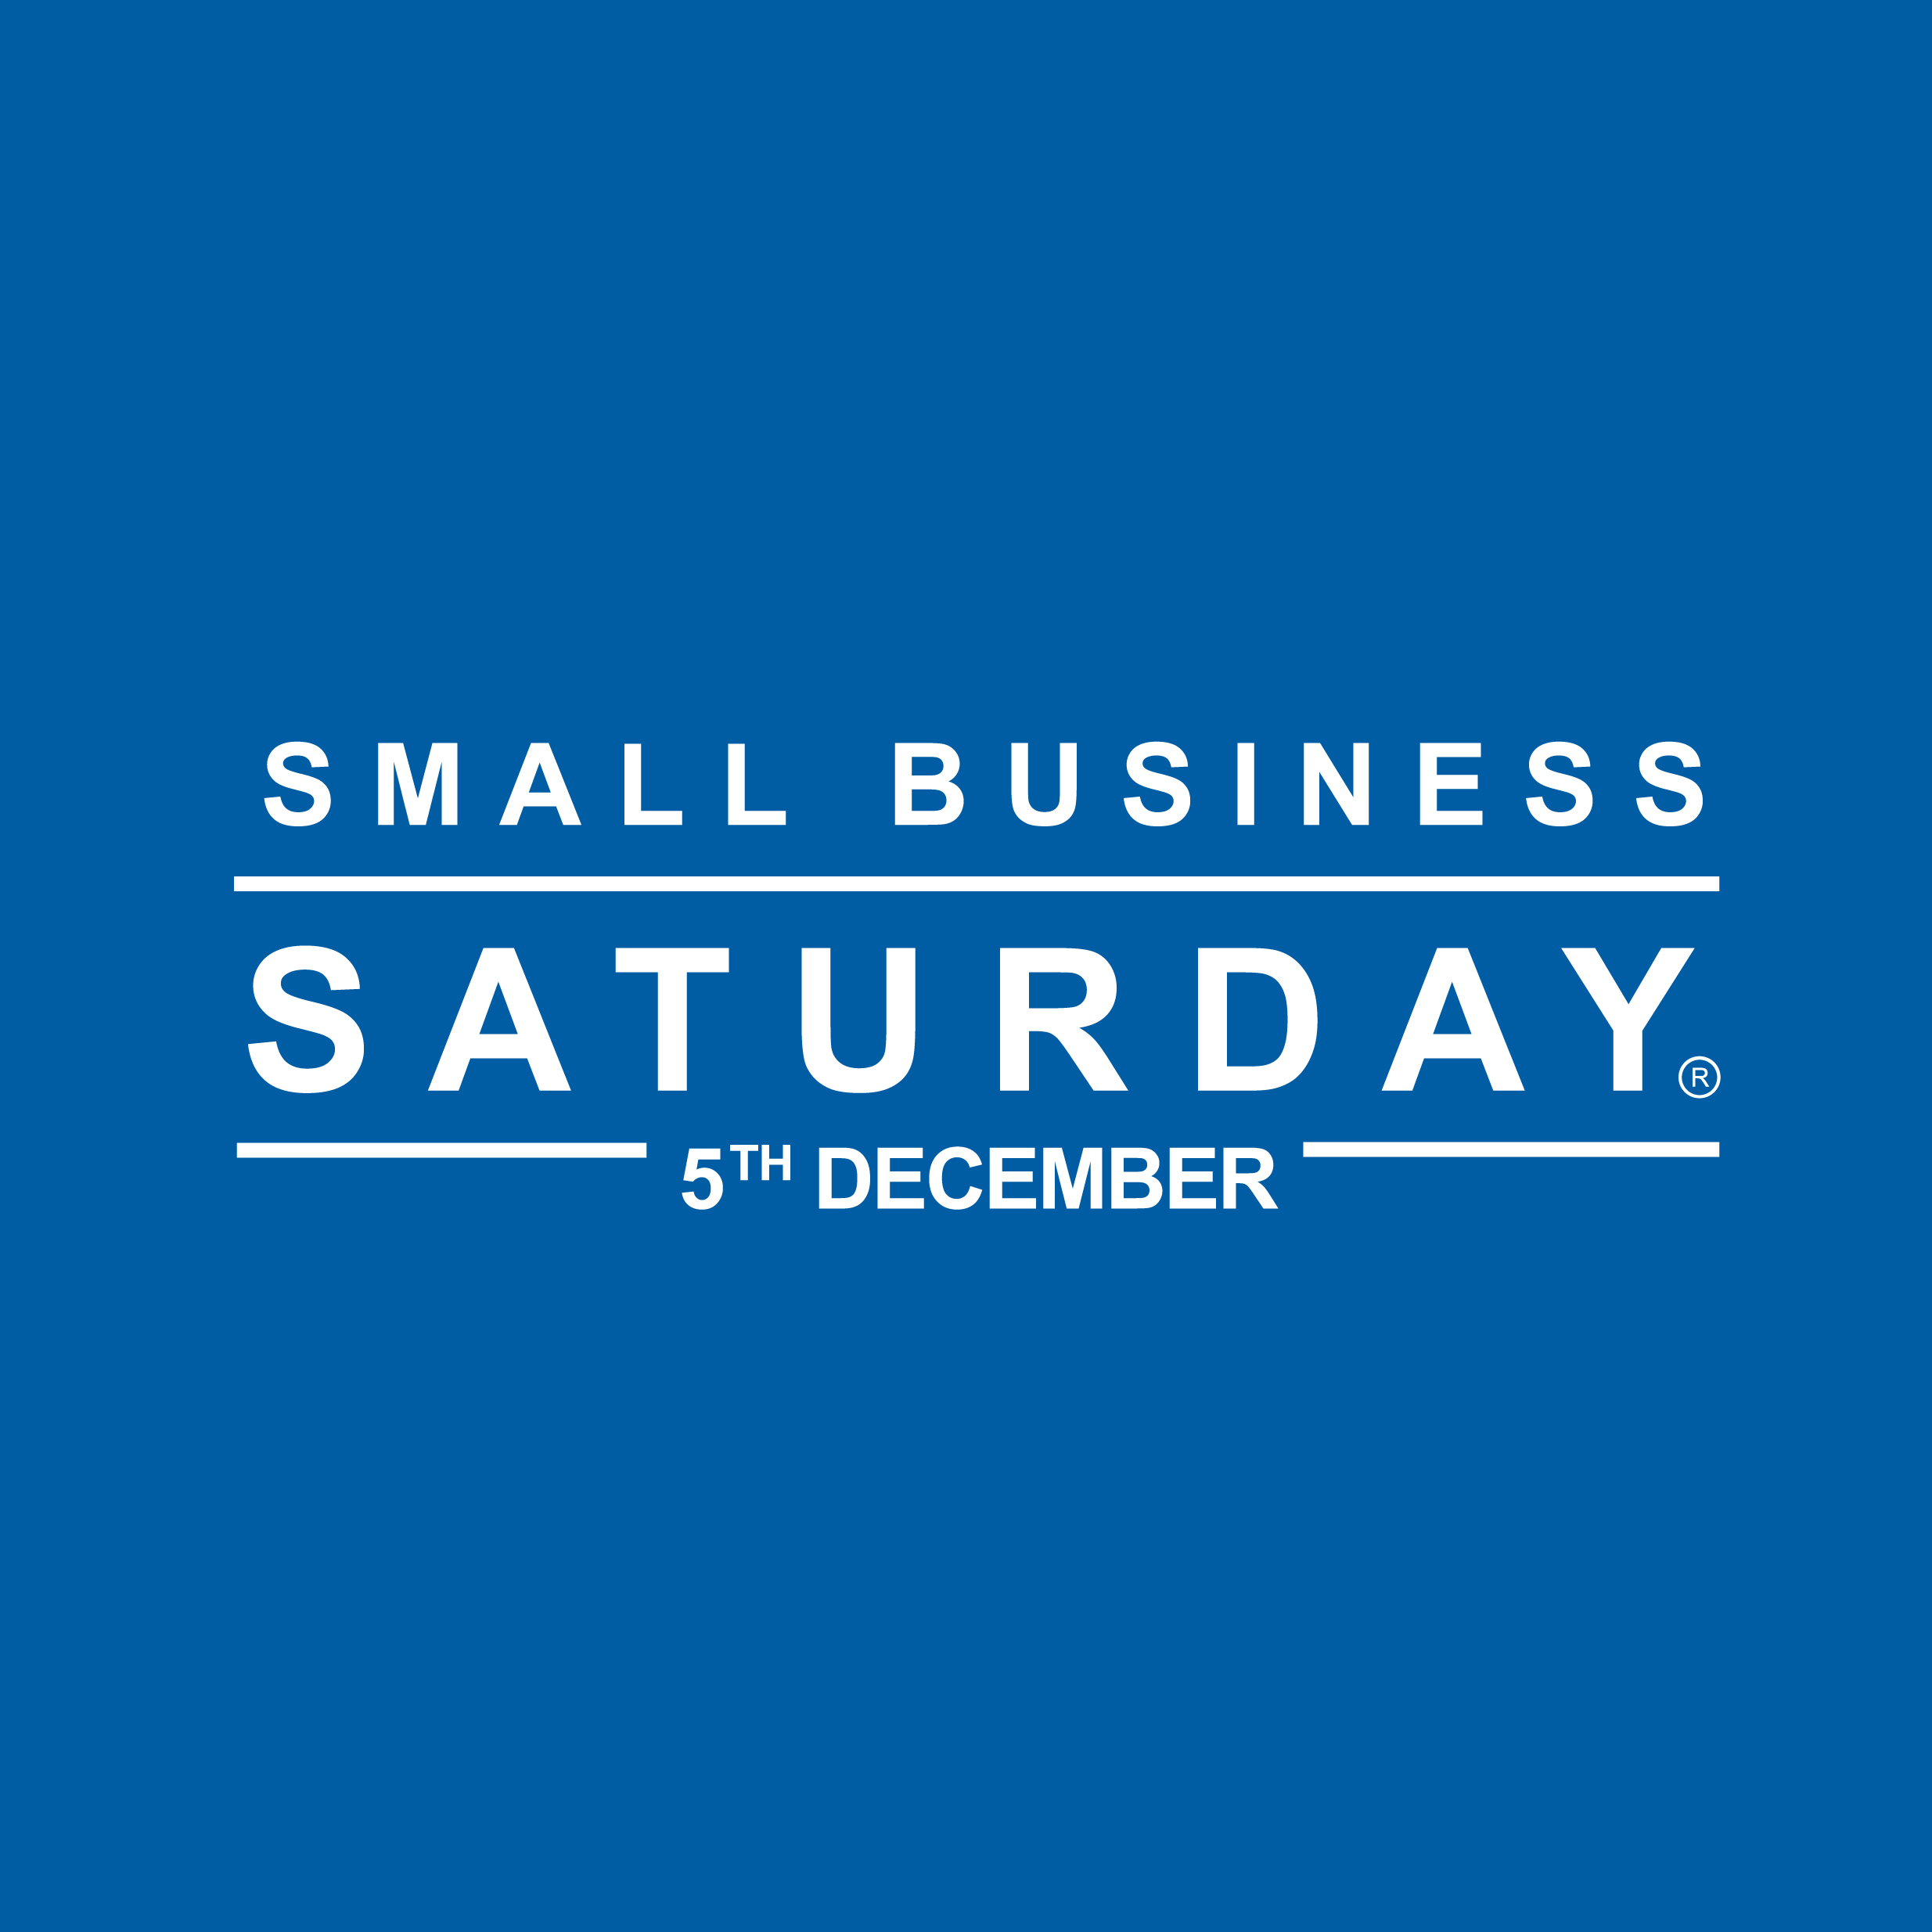 Small Business Saturday UK – 2015